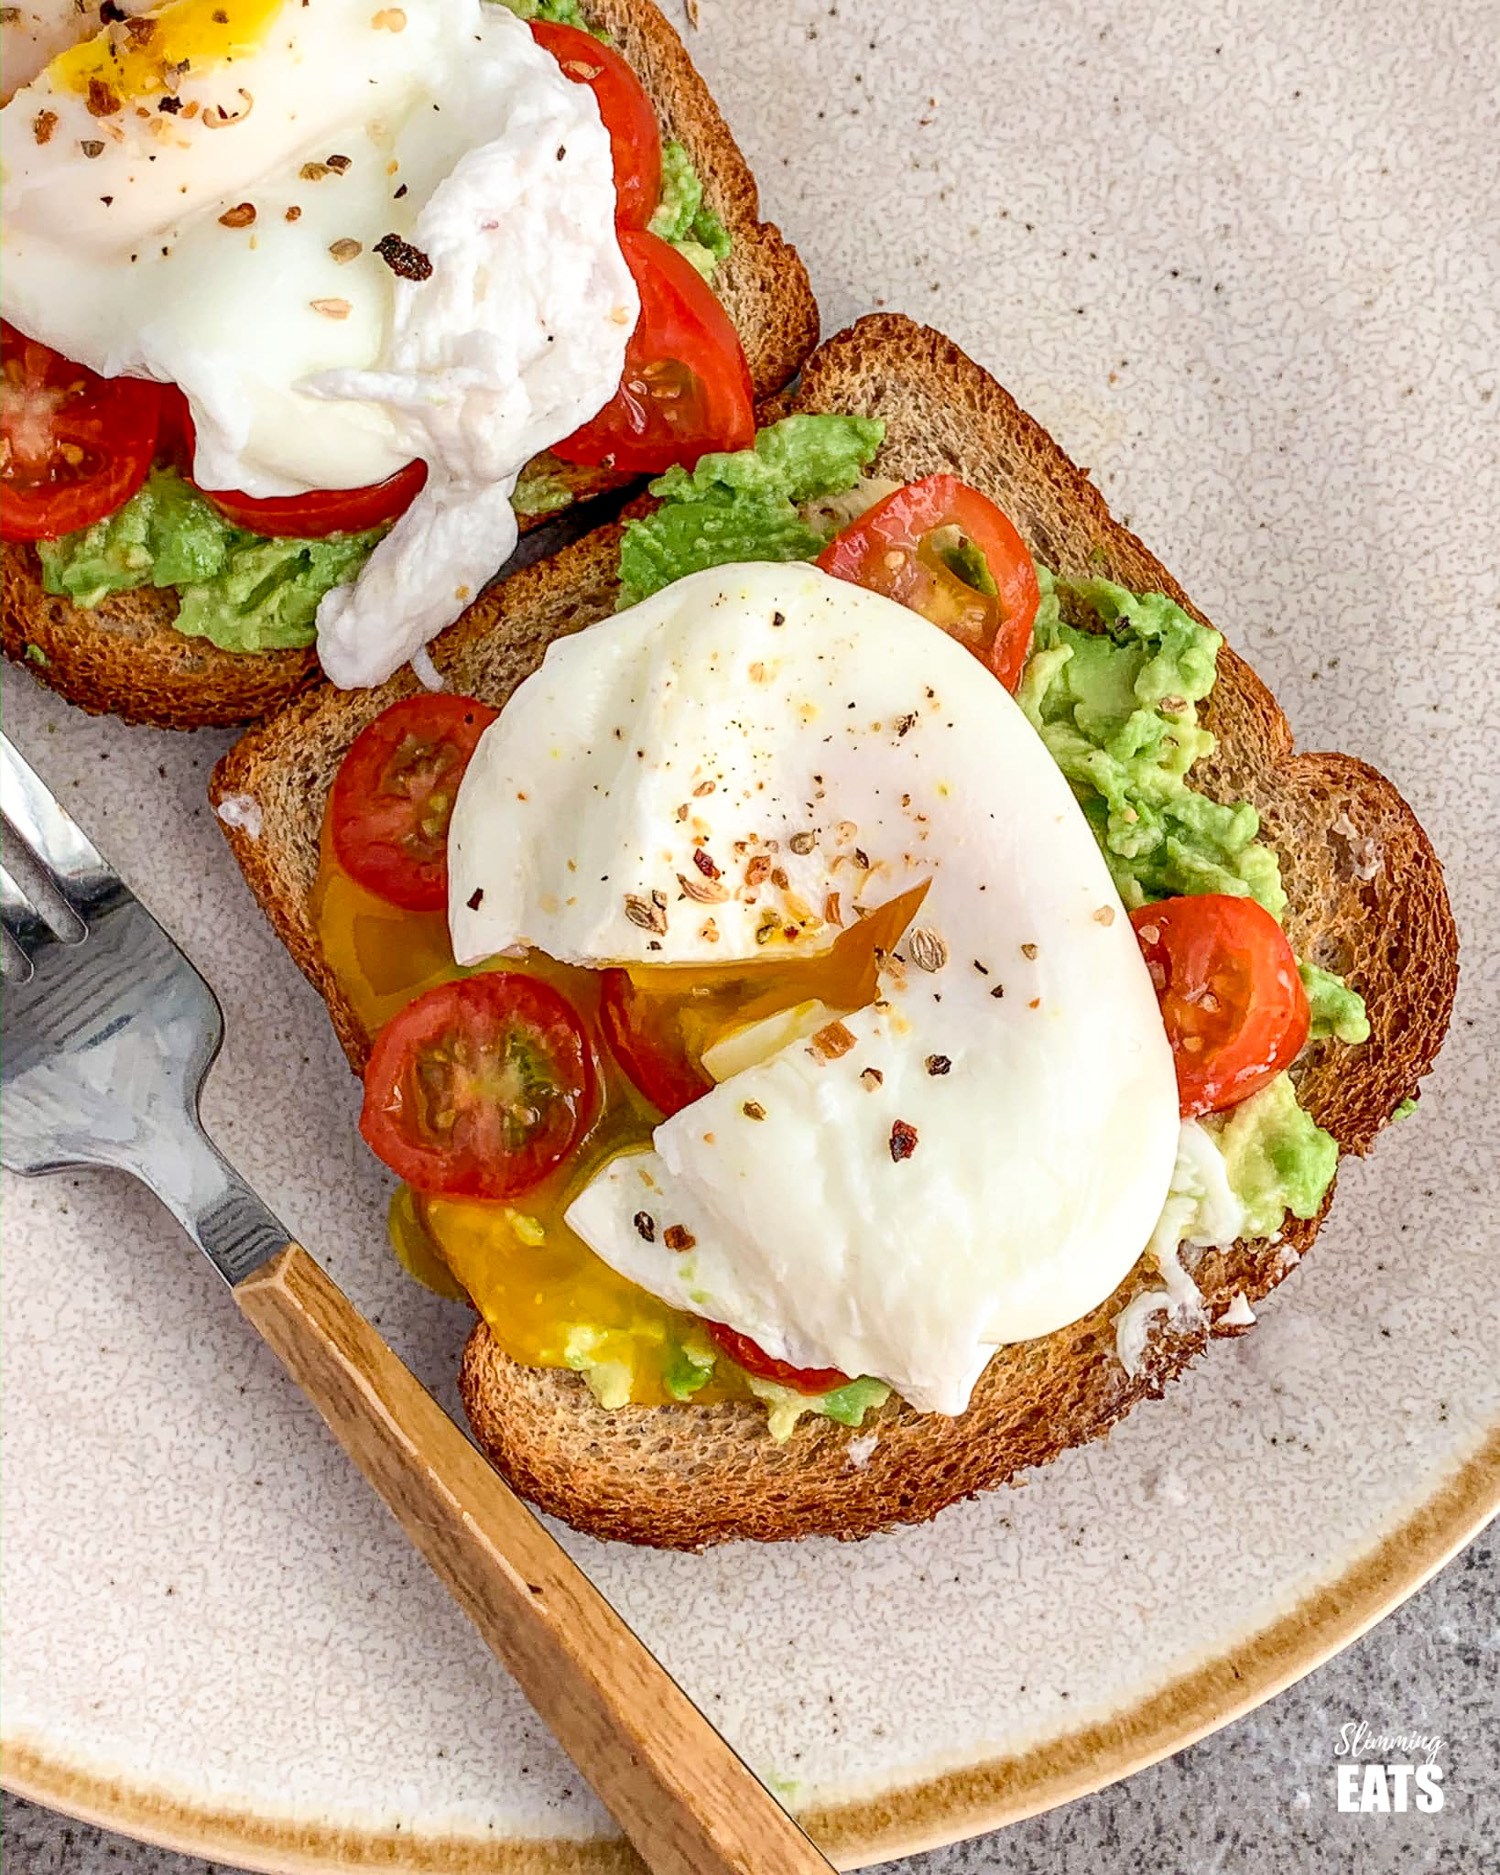 poached eggs over wholewheat toast with mashed avocado and sliced cherry tomatoes on beige rimmed cream plate with fork to the let